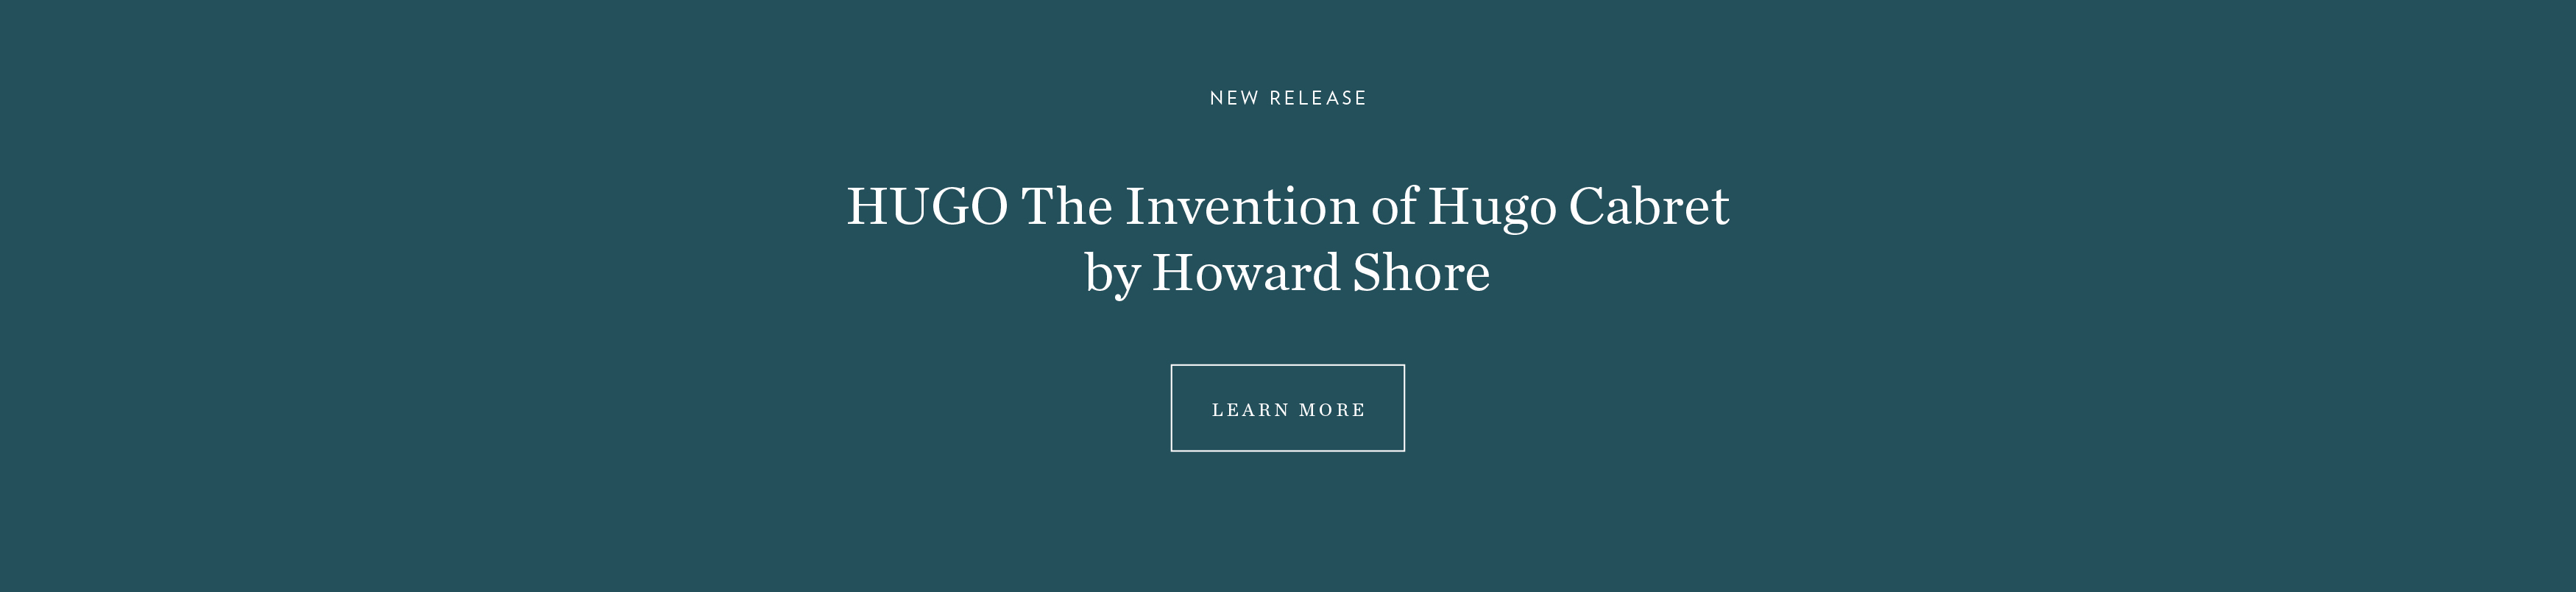 hugo-the-invention-of-hugo-cabret-tnv